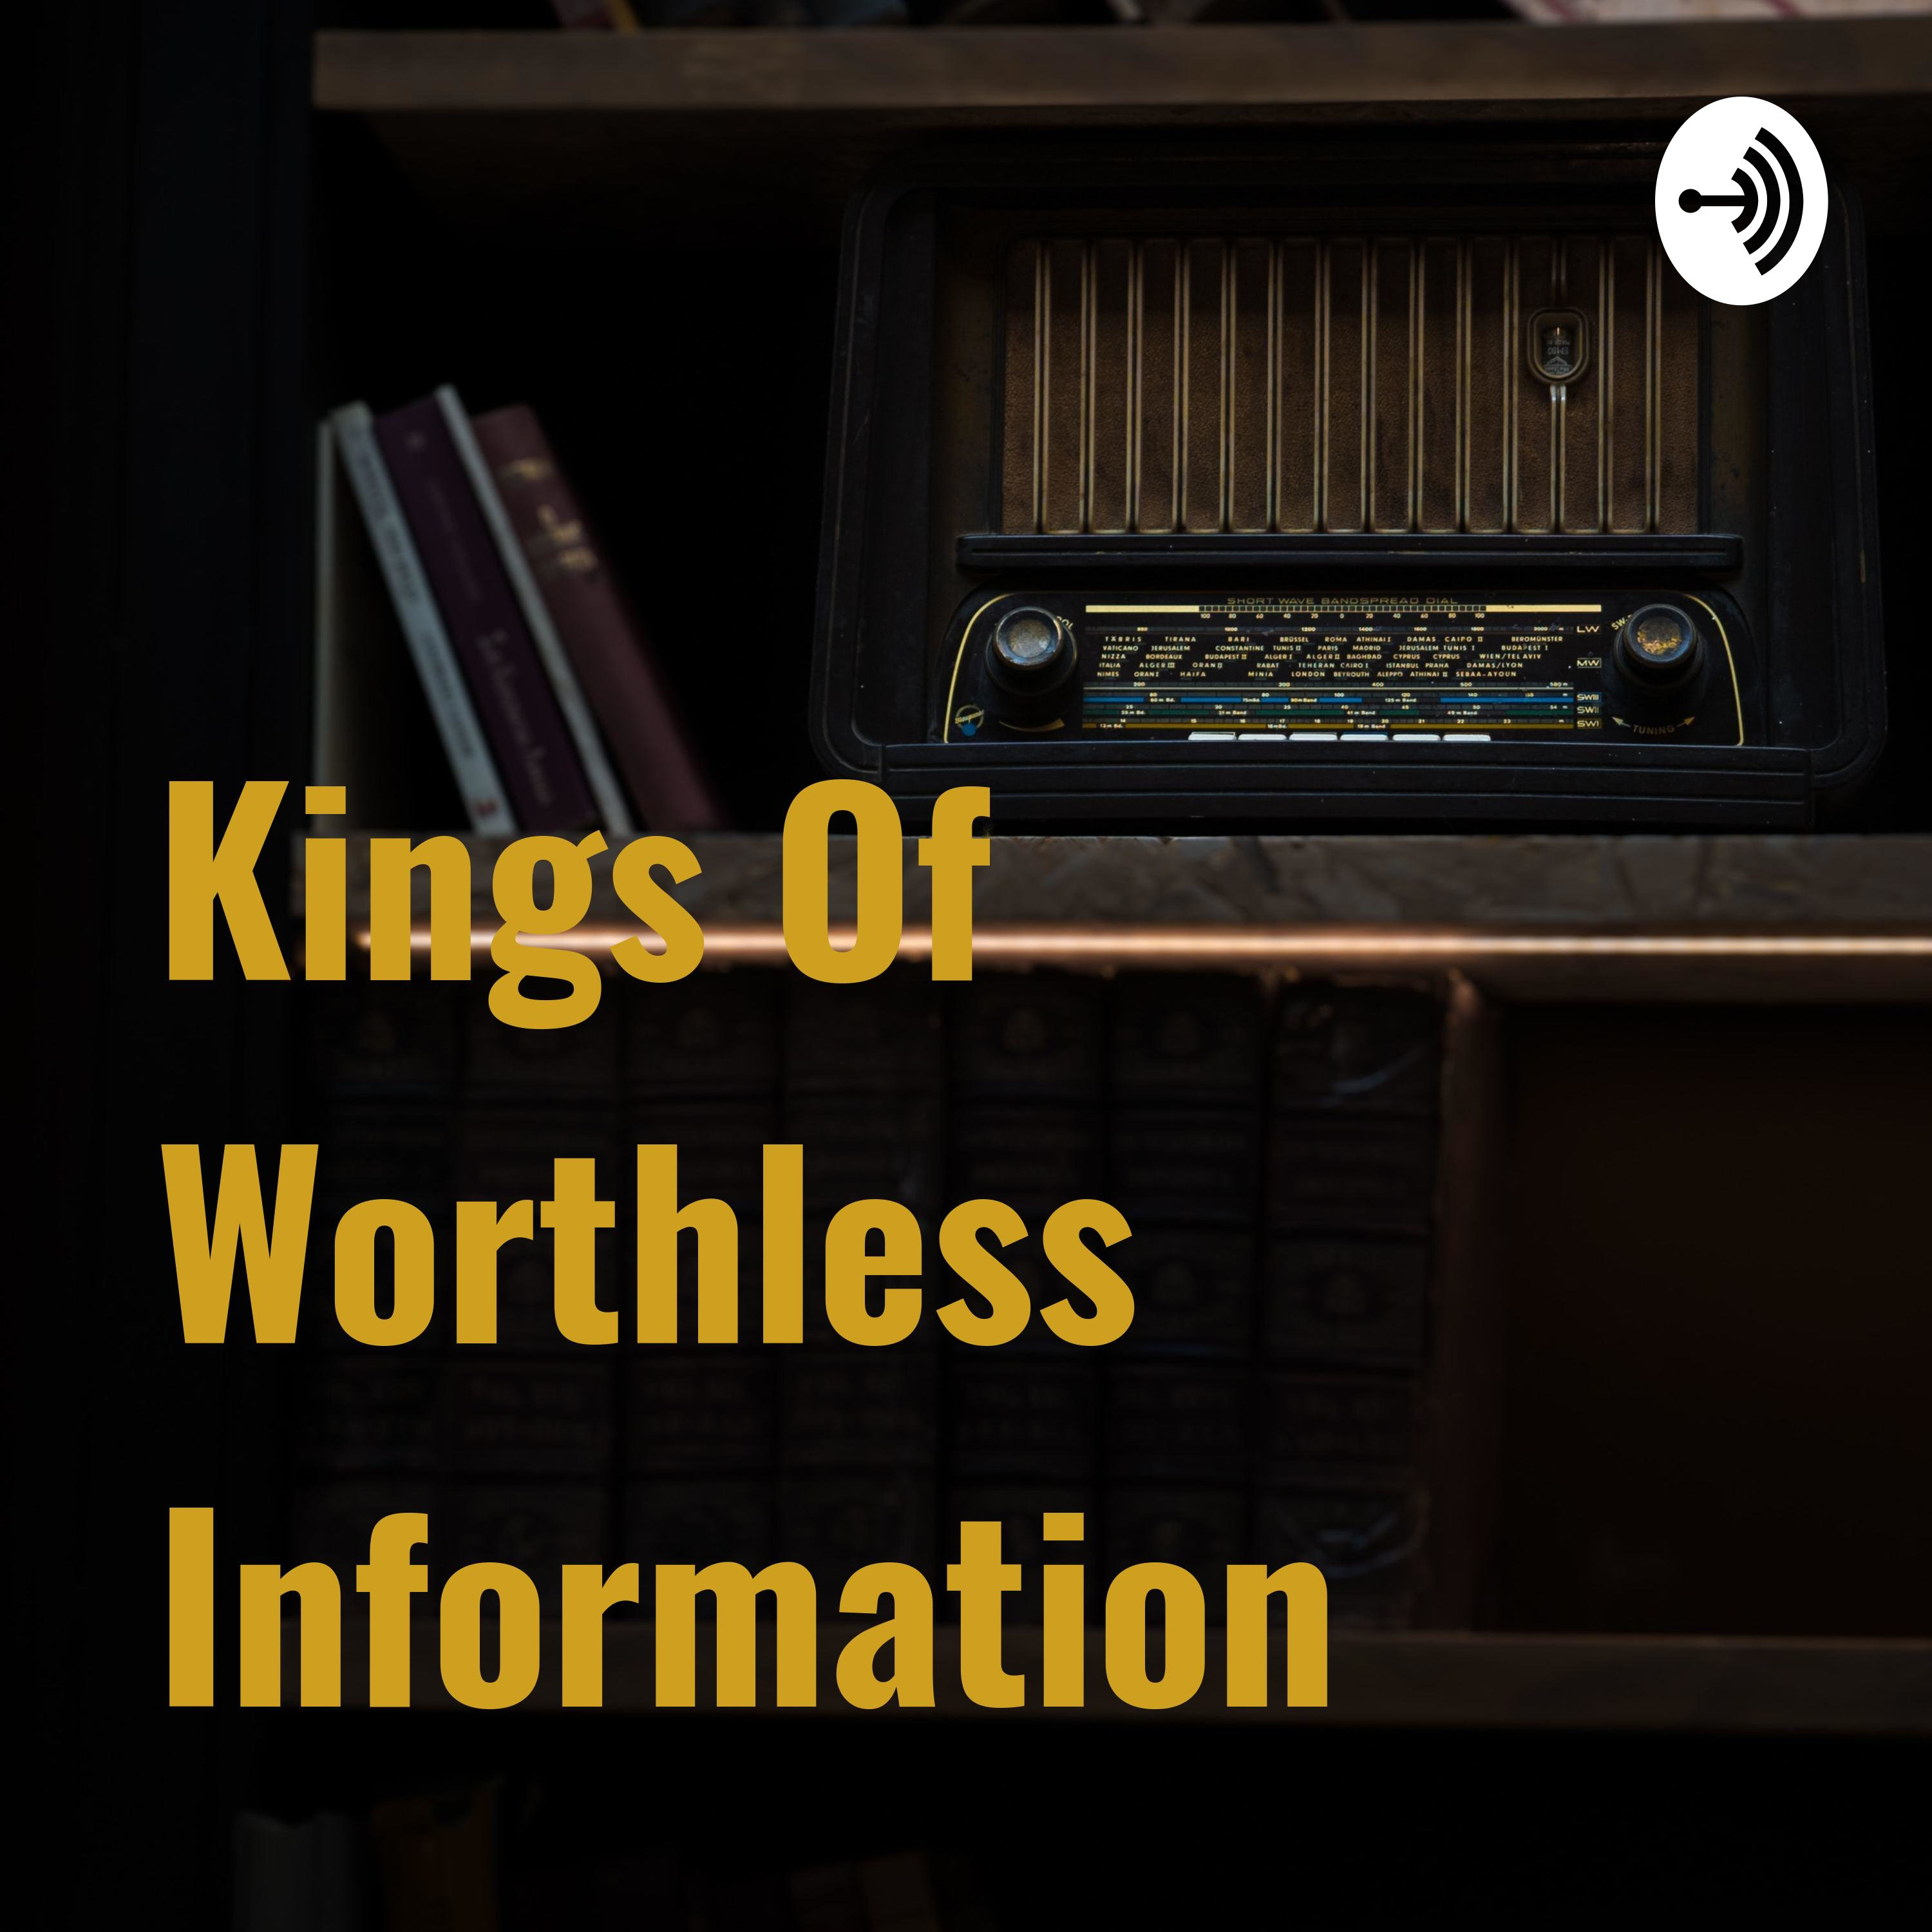 Kings Of Worthless Information (Trailer)